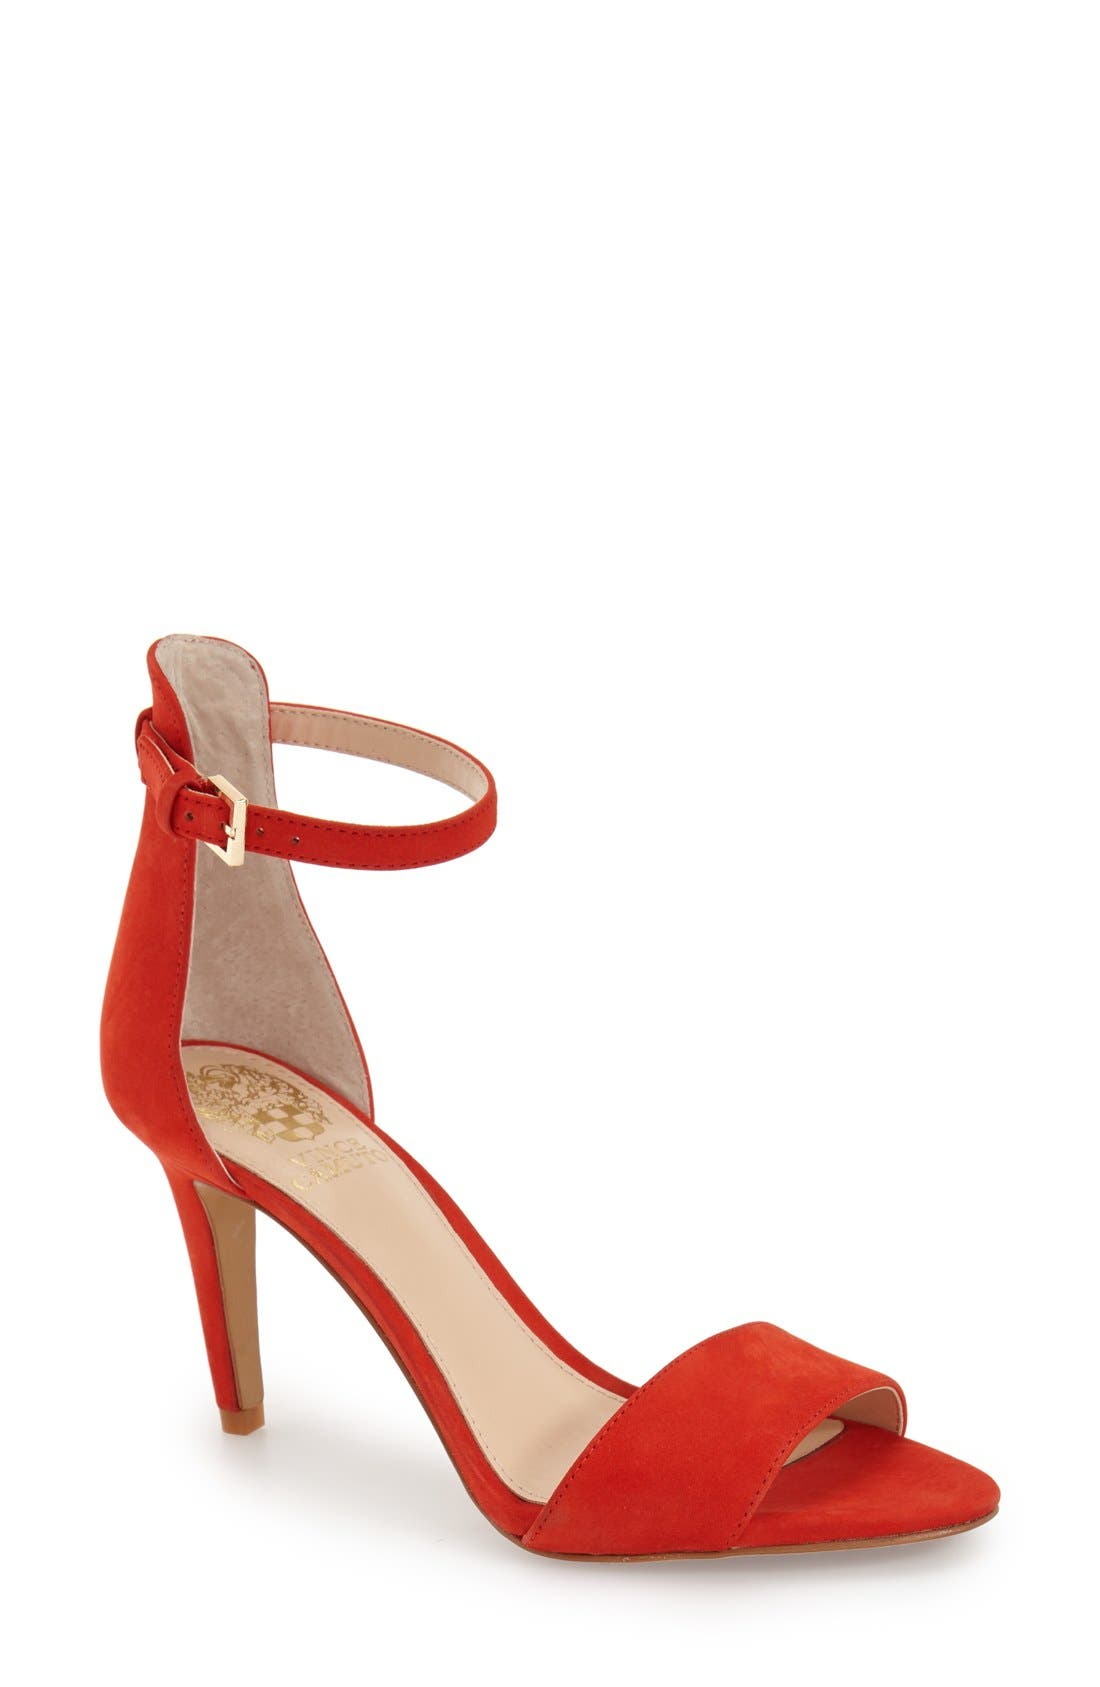 Alternate Image 1 Selected - Vince Camuto 'Court' Ankle Strap Sandal (Women)